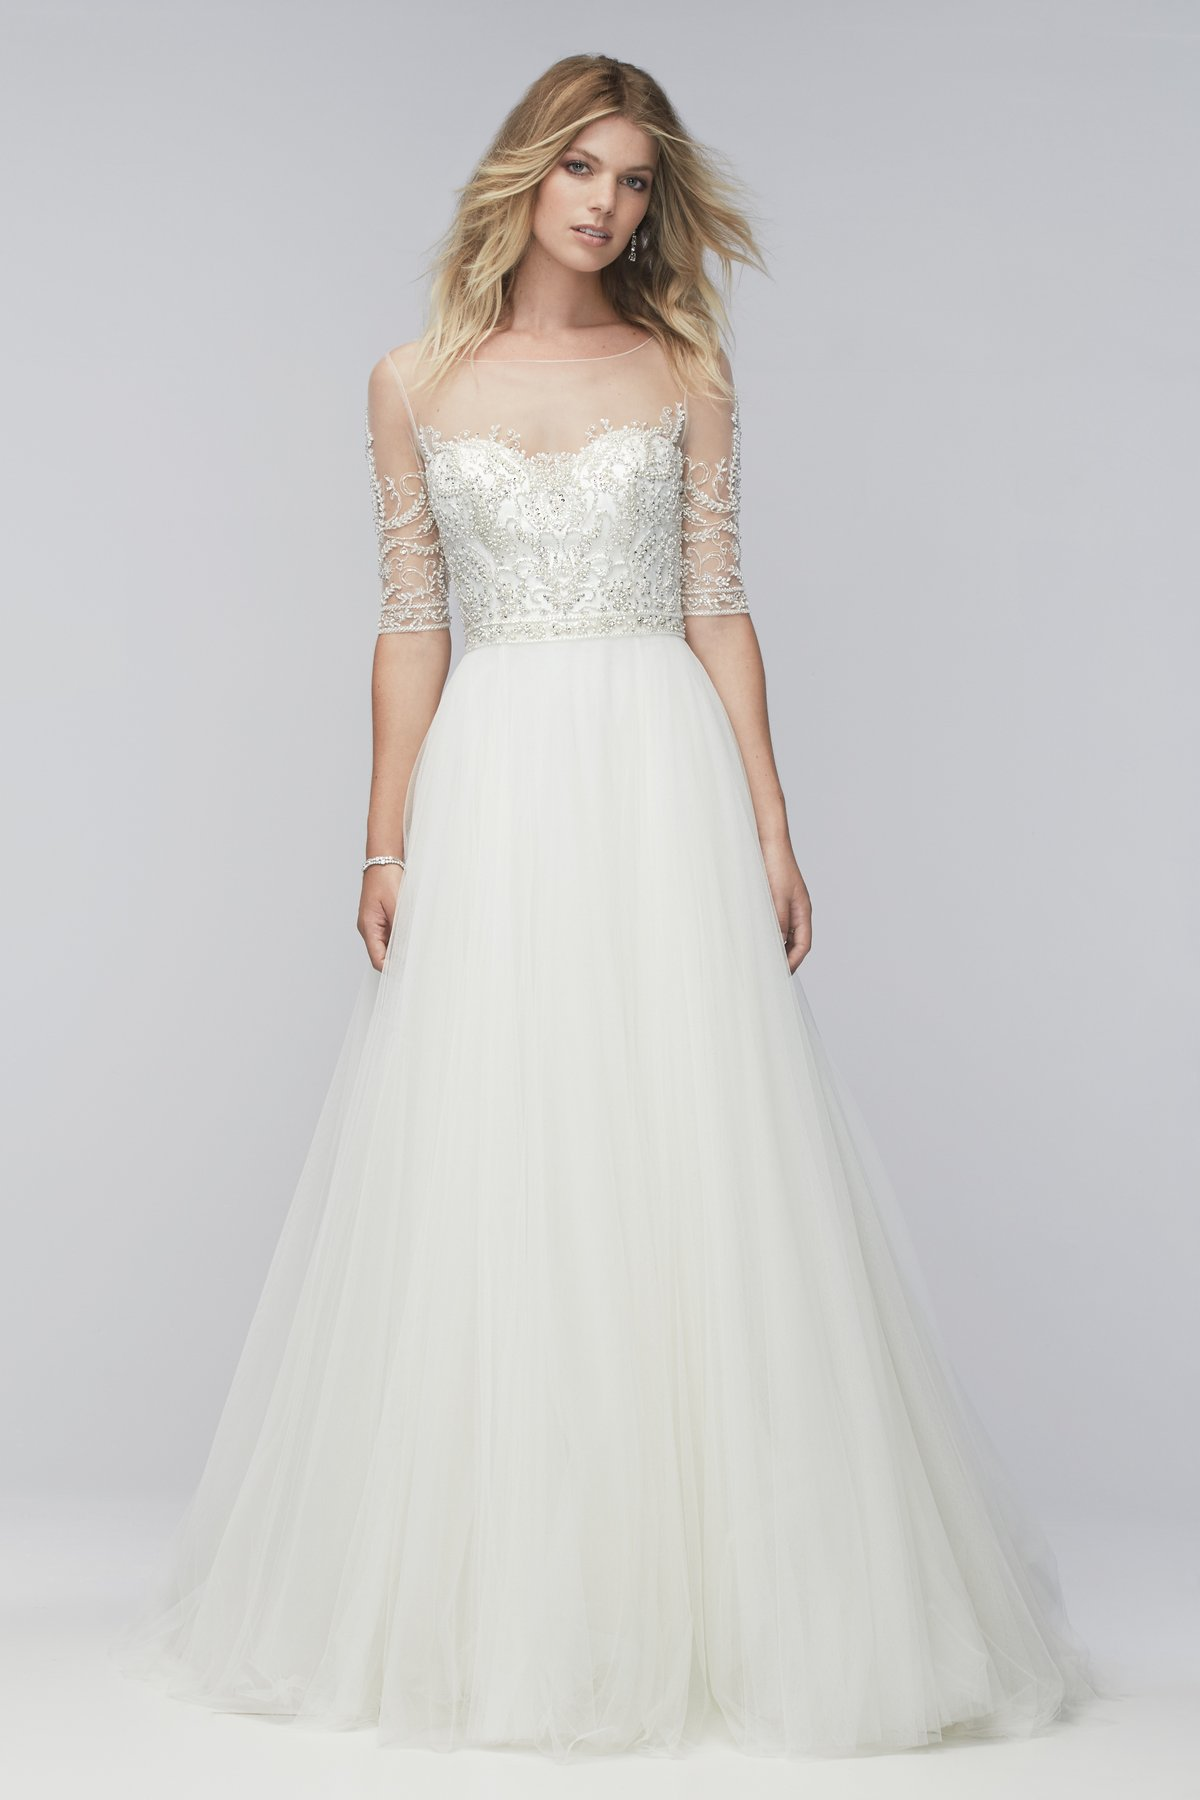 W2NELLY Bridal Gown byWTOO Front